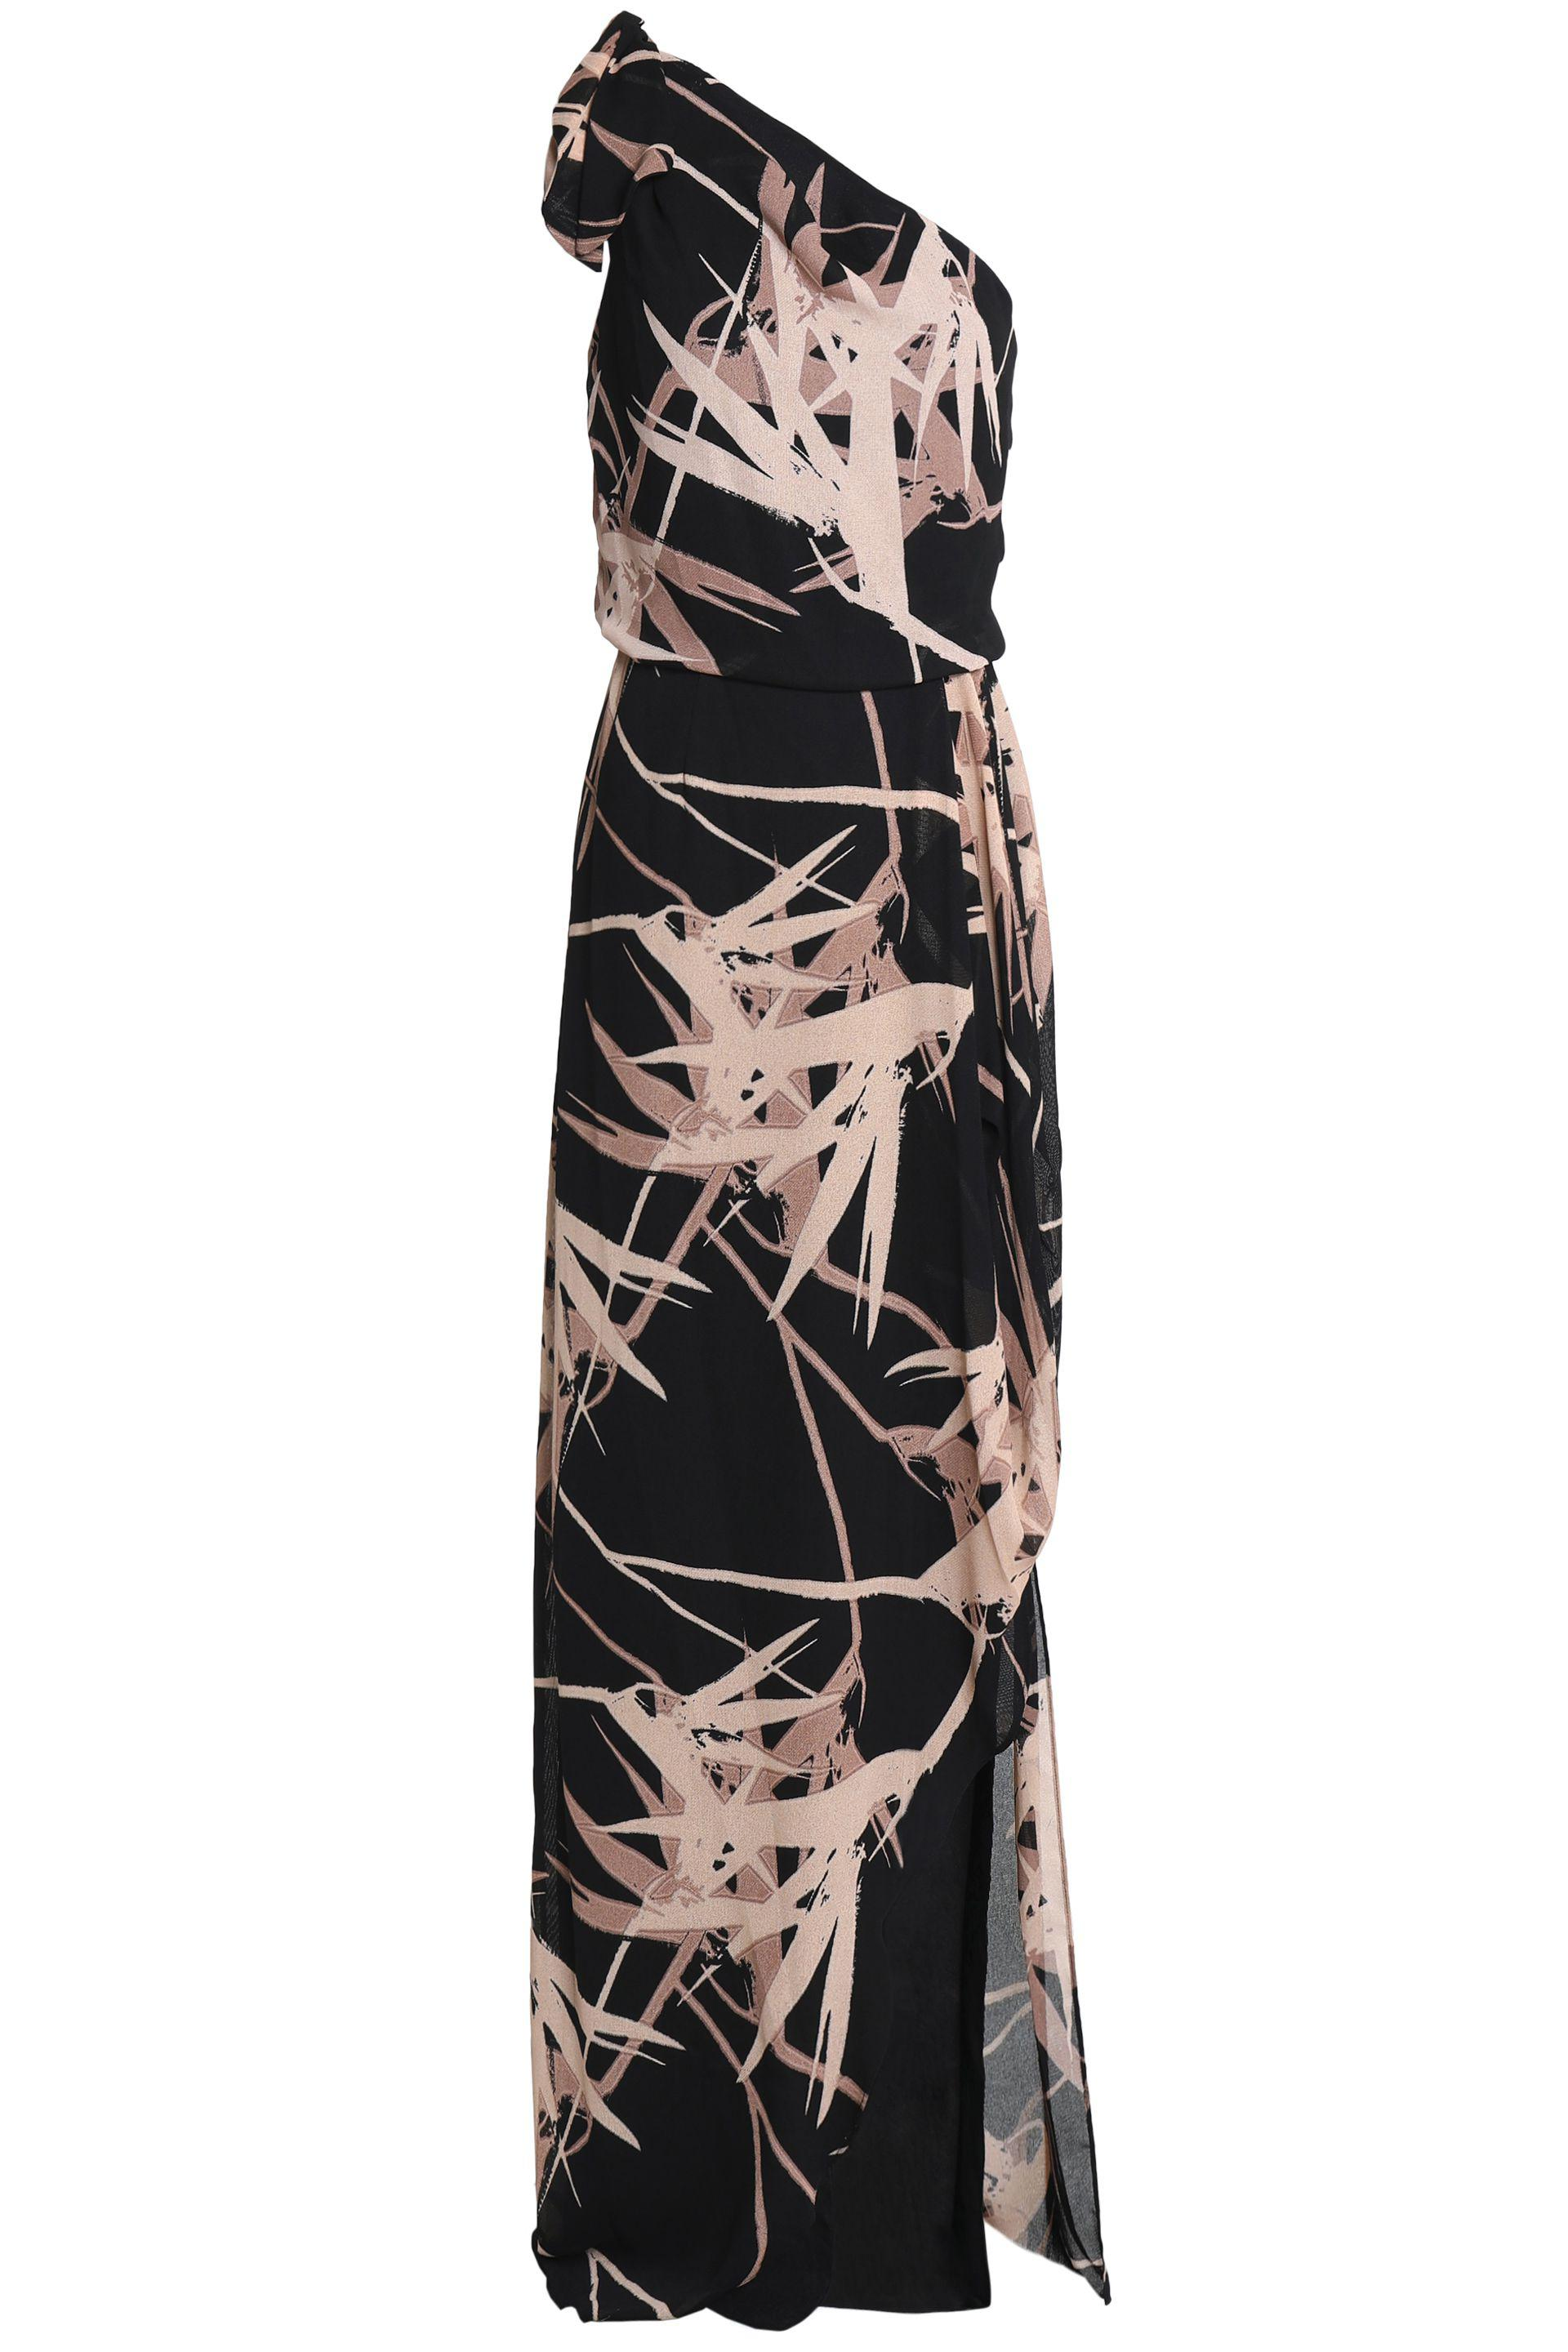 69c0ff2585 Halston One-shoulder Draped Printed Crepe Gown in Black - Lyst